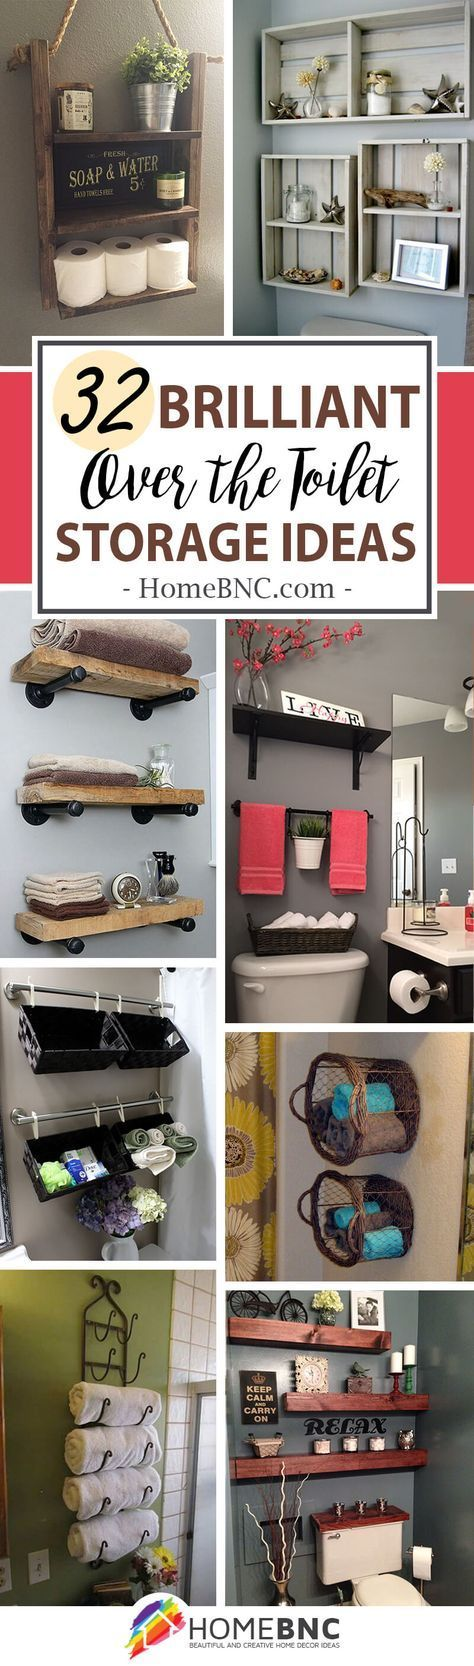 best for the bathroom images on pinterest cleaning hacks